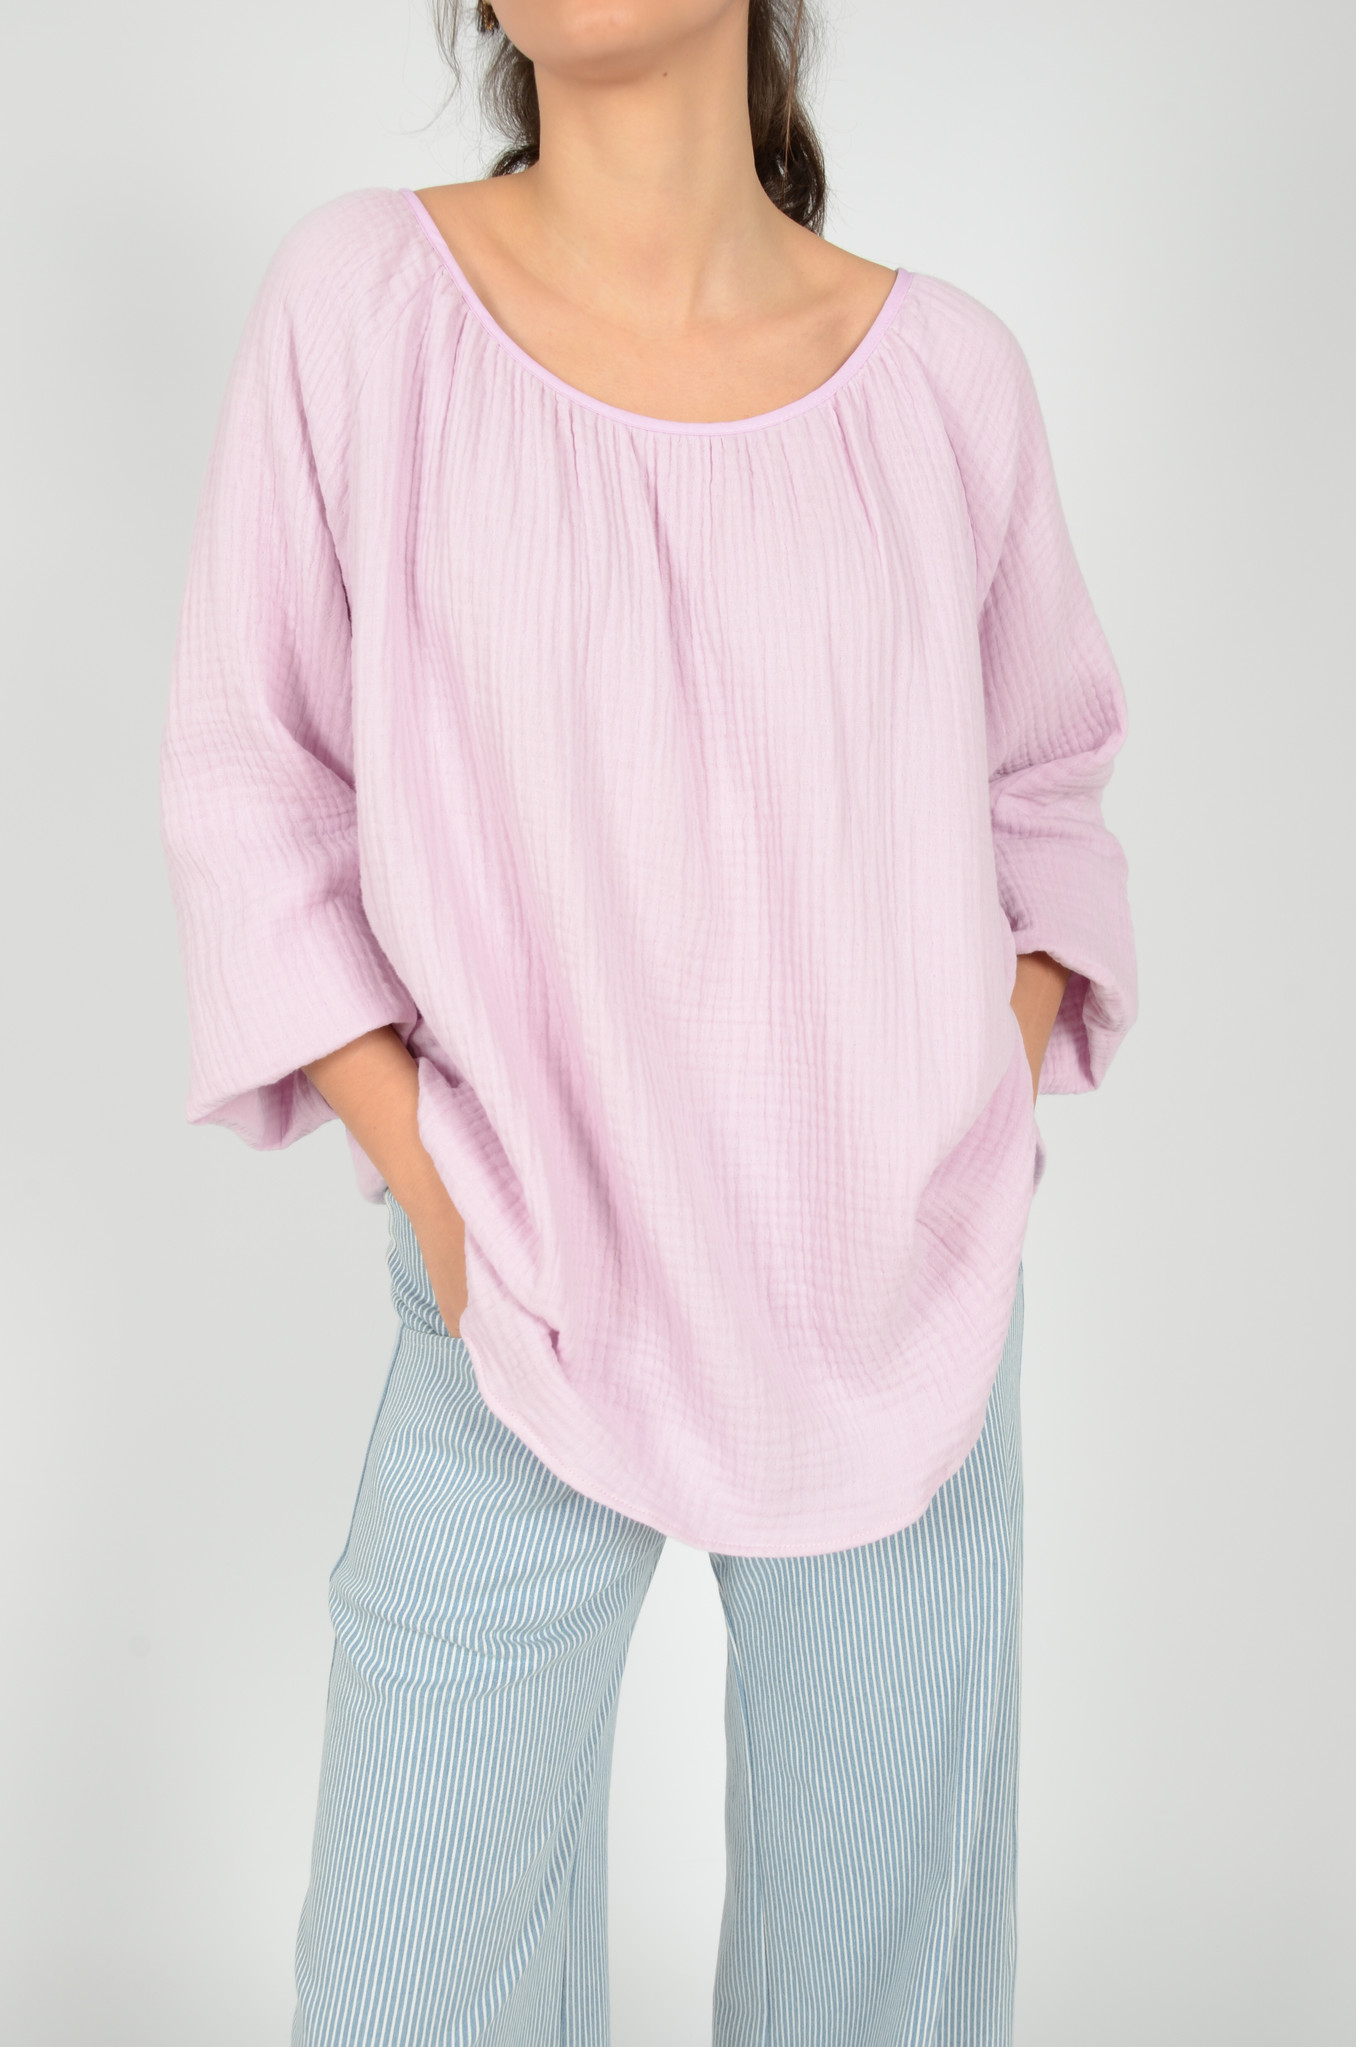 MORNING BLOUSE IN LILAC-1